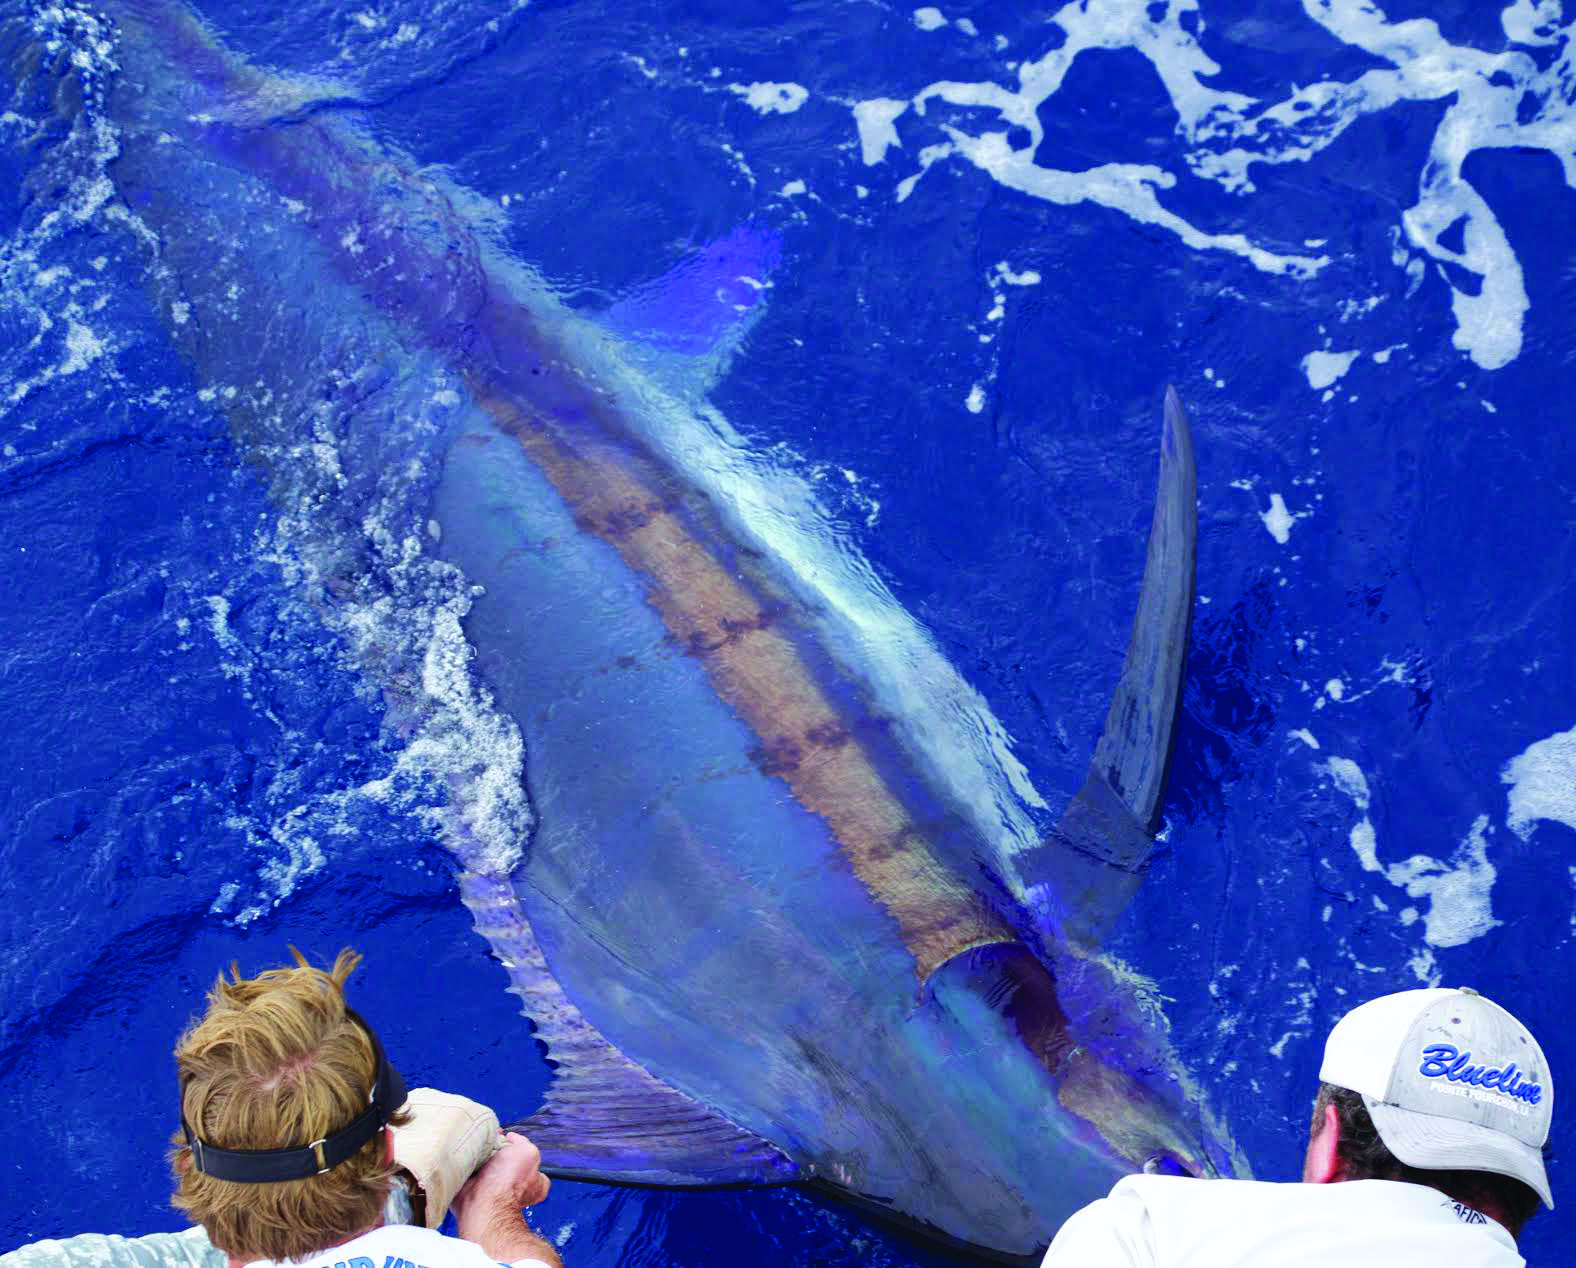 Huge blue marlin boatside prior to being released